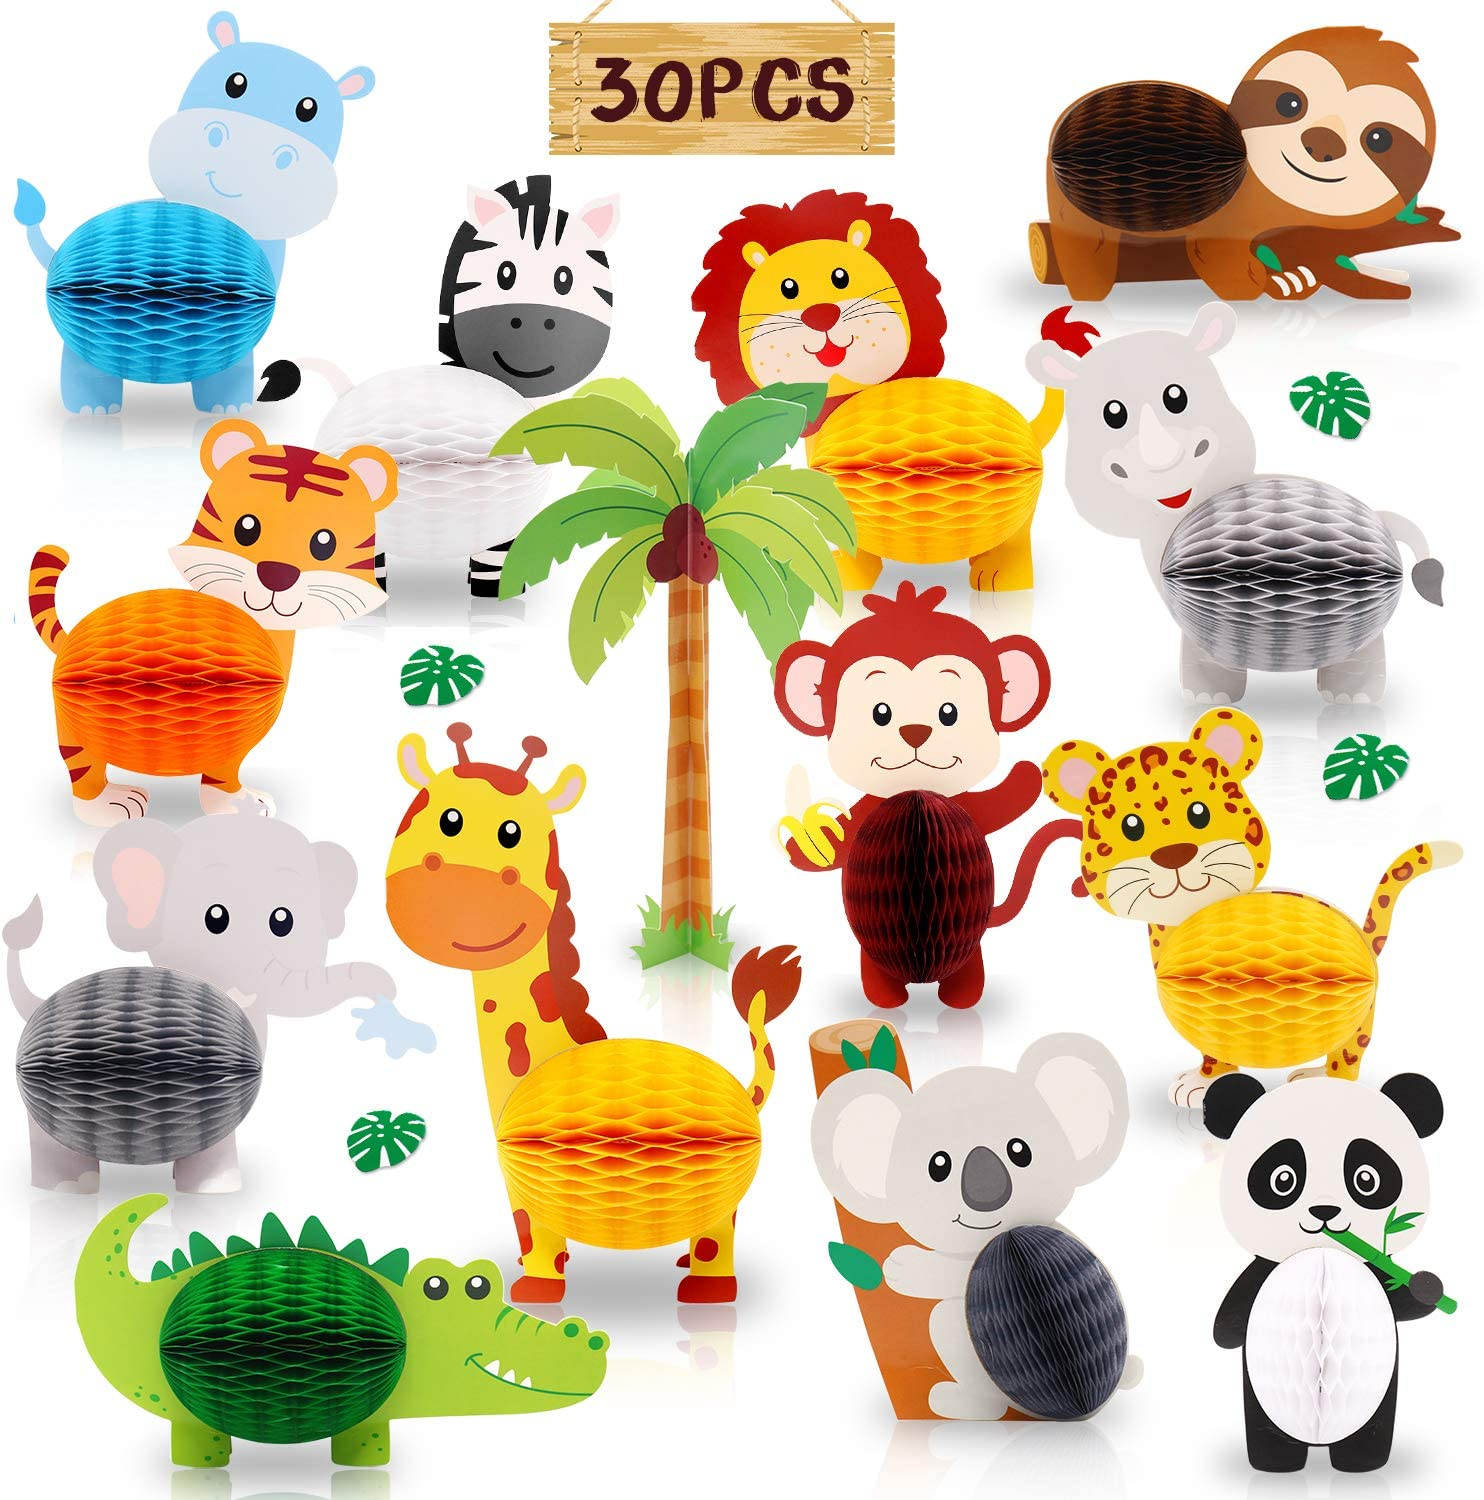 30PCS Jungle Safari Animals Honeycomb Centerpieces 3D Table Decorations for Jungle Safari Birthday Baby Shower Party Decorations Supplies